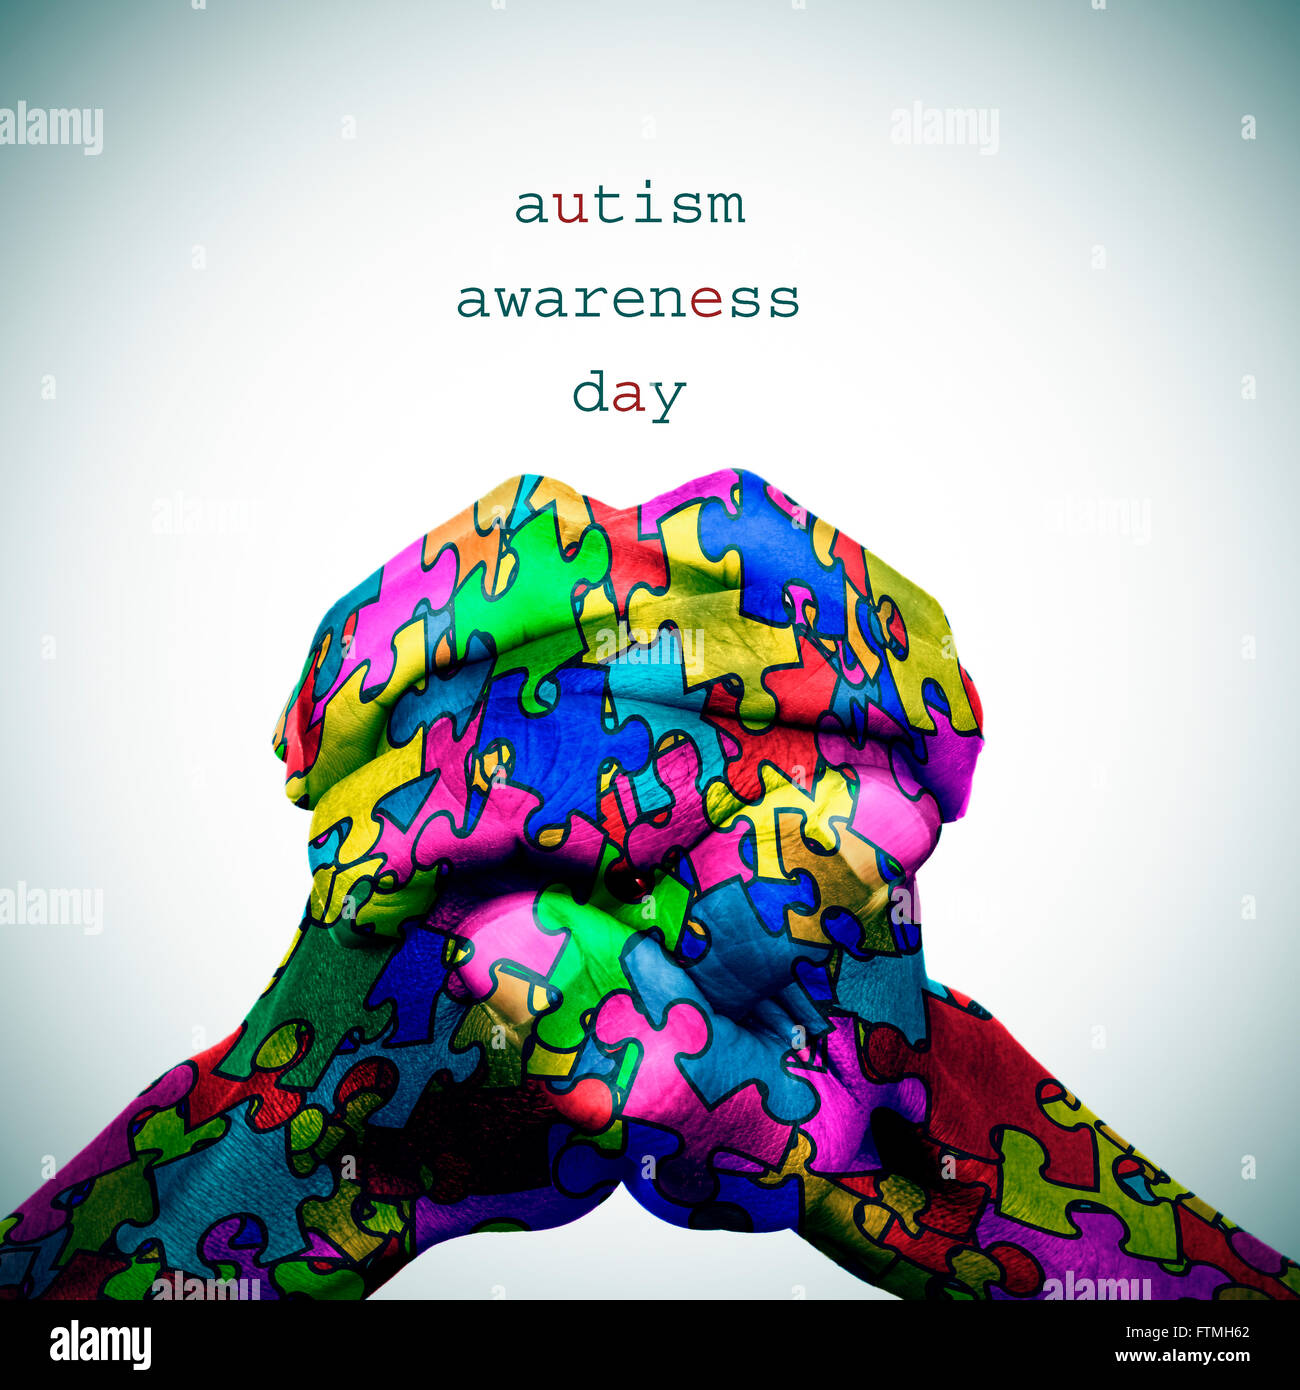 text autism awareness day and the hands of a man put together patterned with many puzzle pieces of different colors, - Stock Image